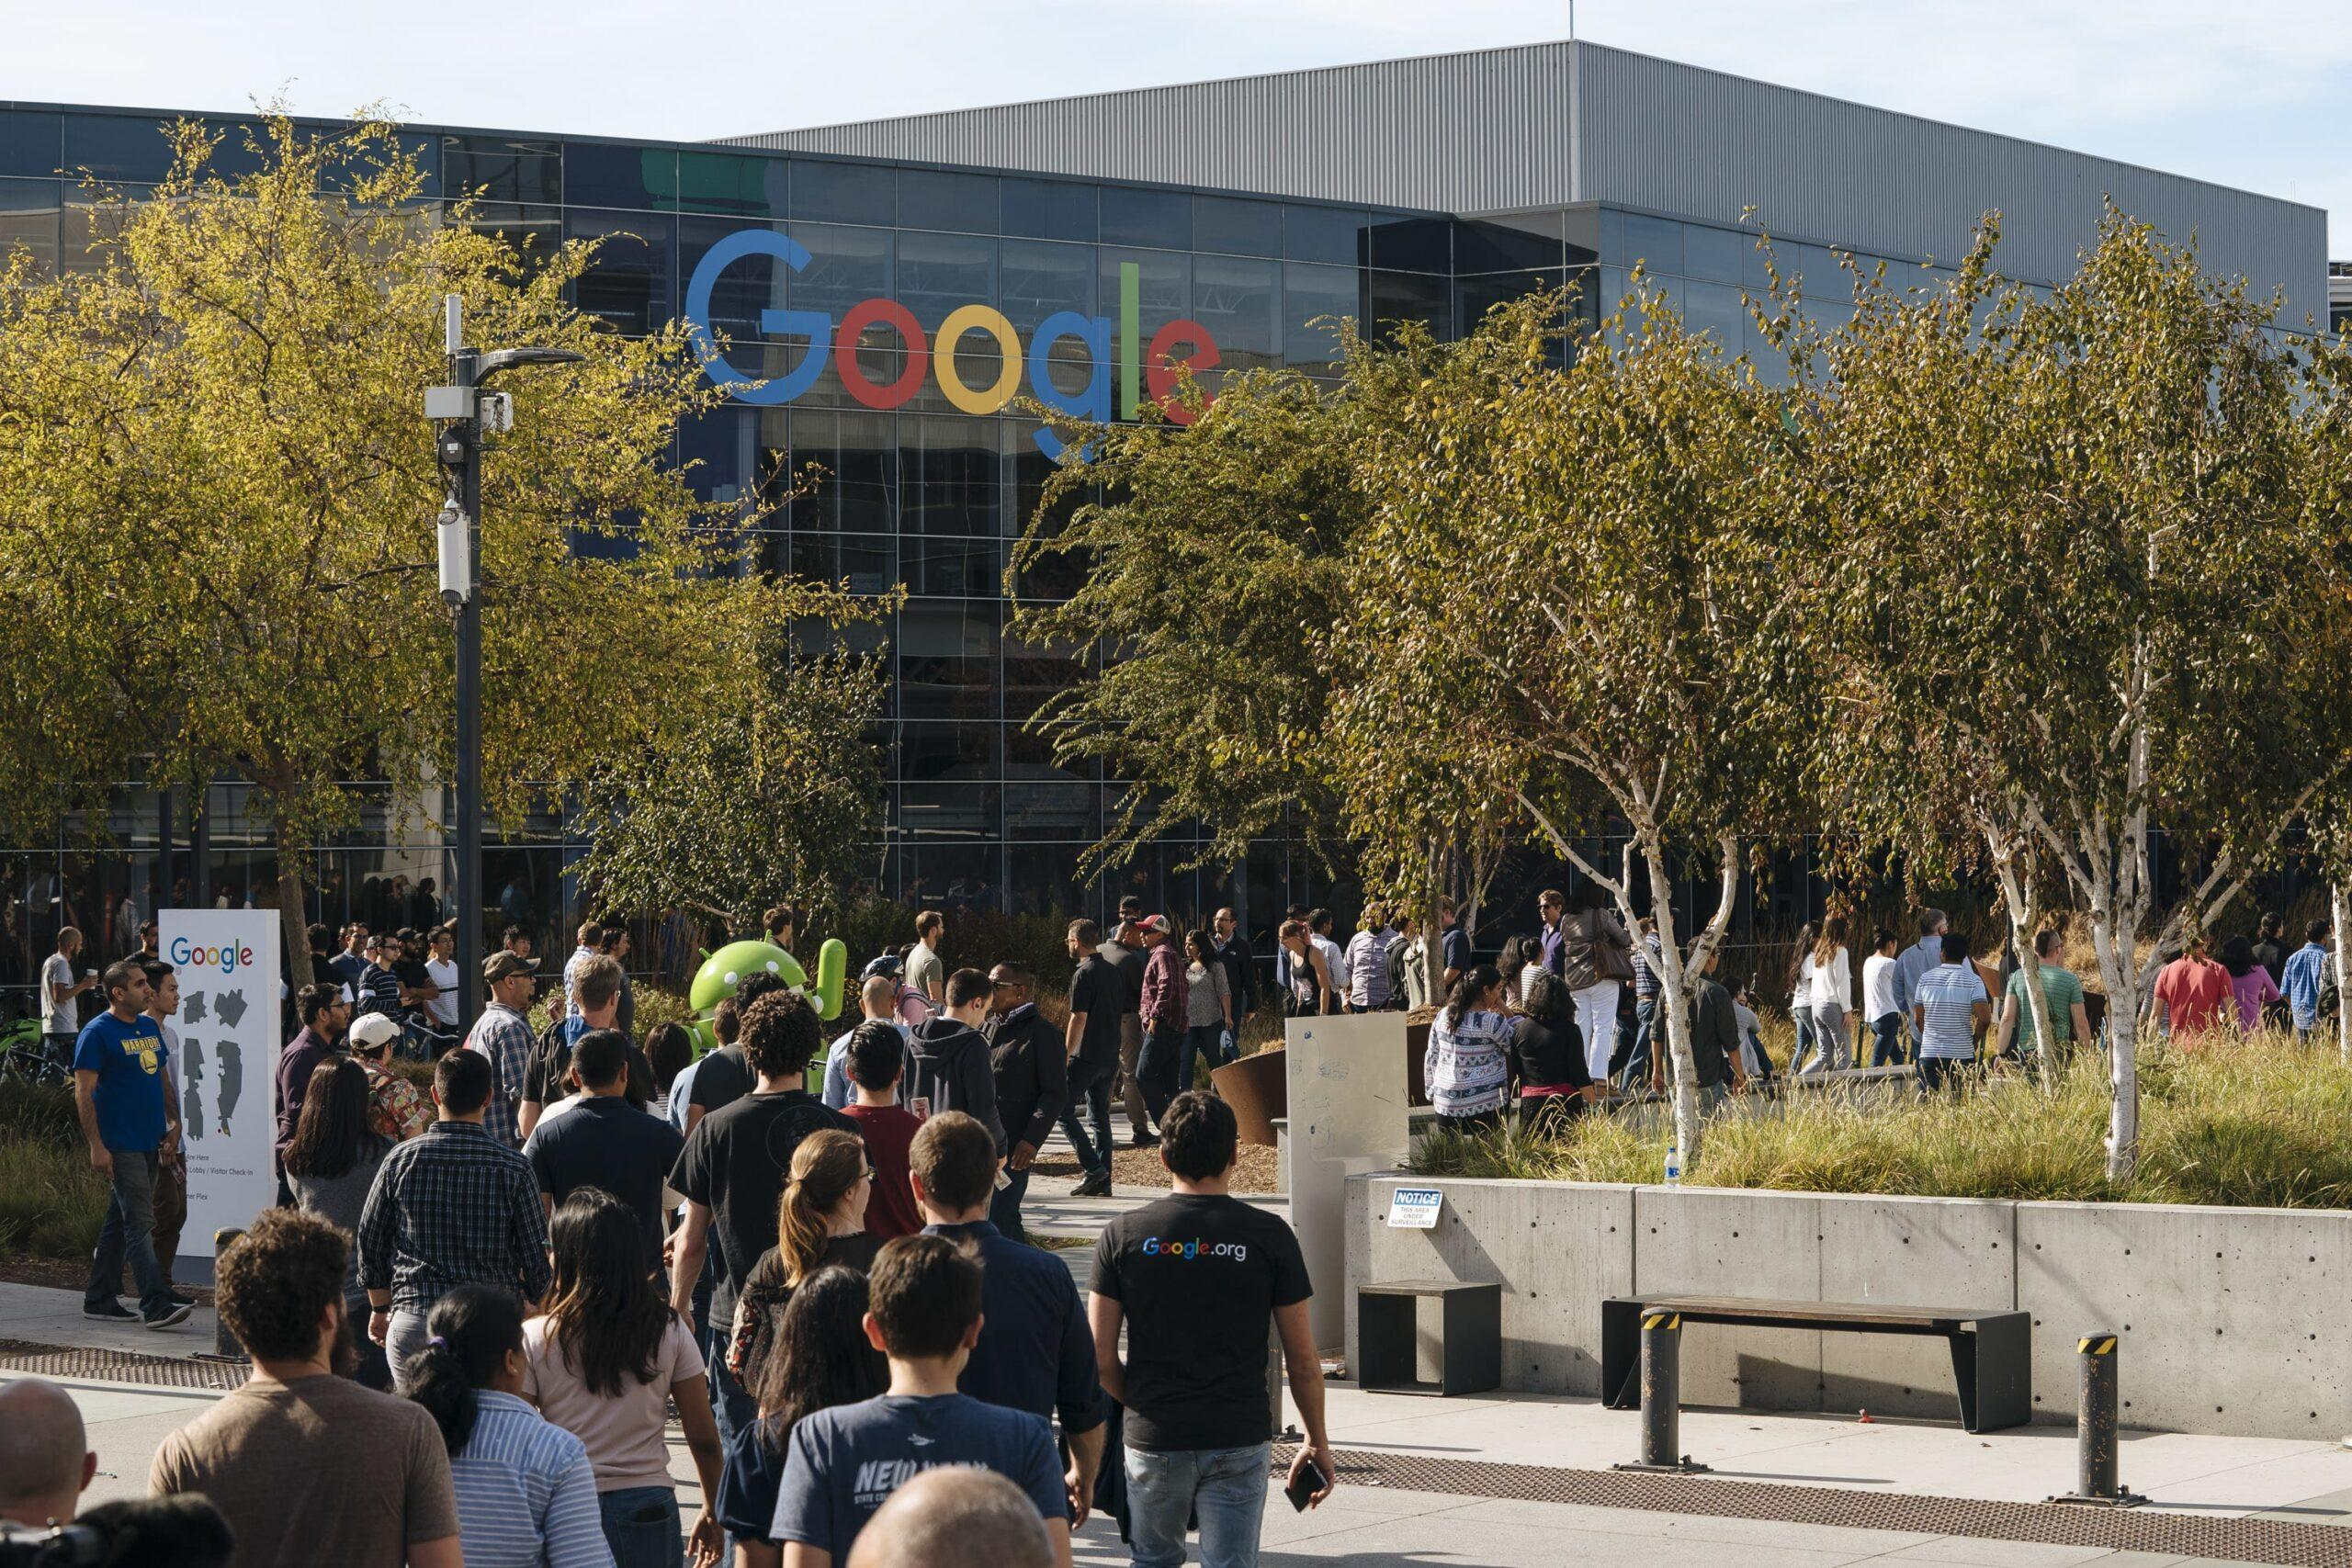 U.S. Labor Board accuses Google of spying on employees, discouraging worker organization, and retaliation